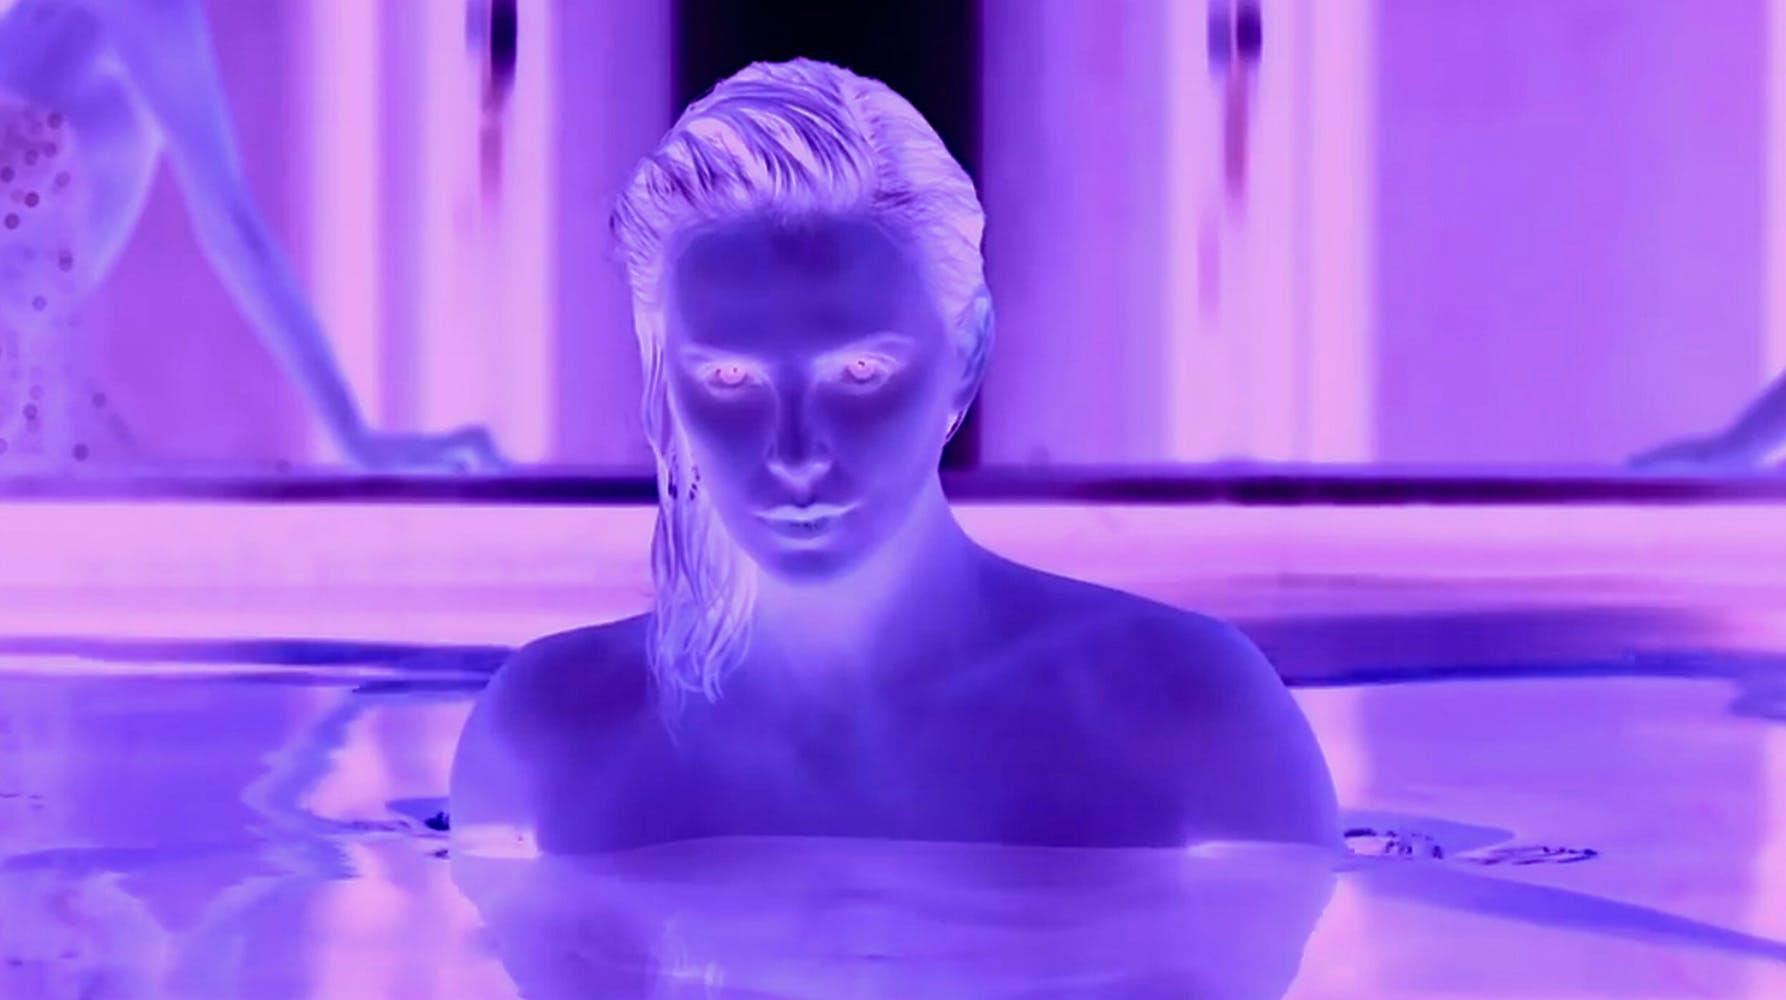 Inverted purple image of woman in water